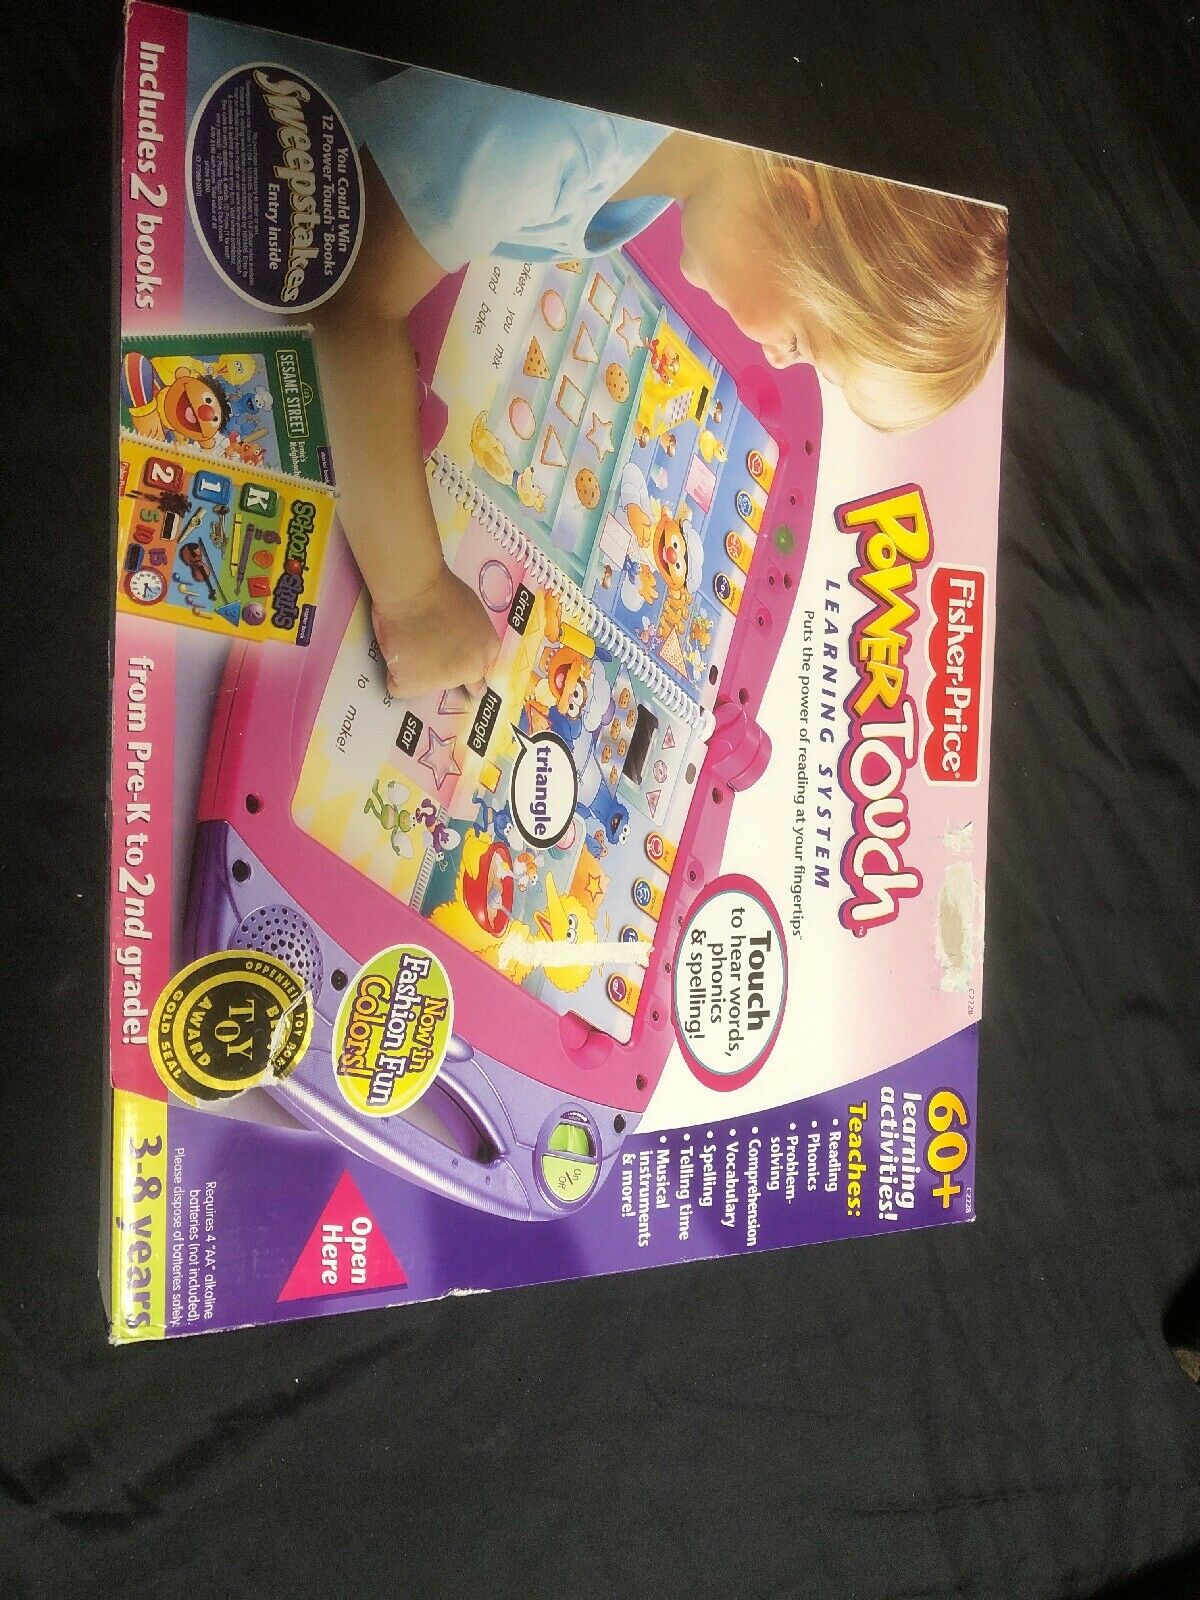 FISHER PRICE POWER TOUCH LEARNING SYSTEM NEW TOY AGES 3-8 PRE K -2ND GRADE GIFT